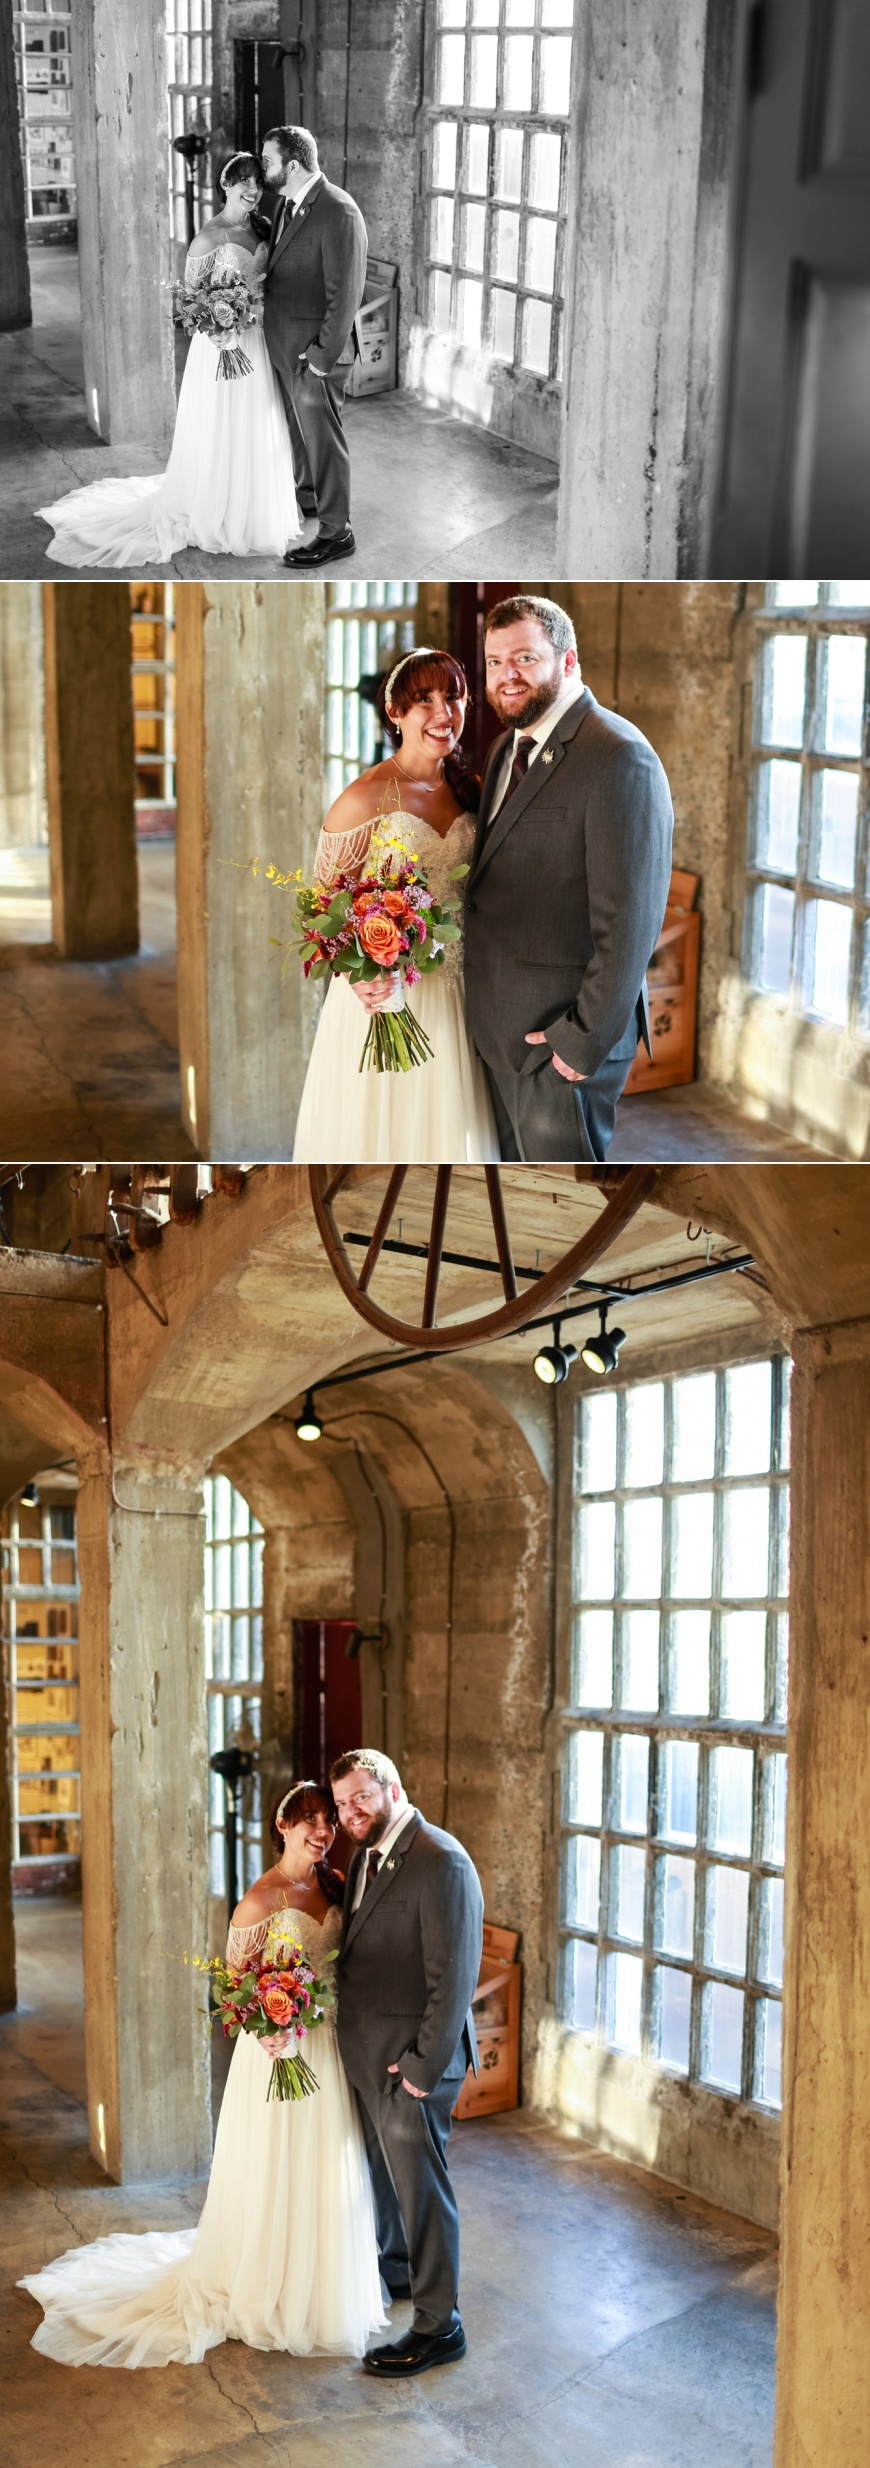 Mercer-Museum-Wedding-Photographer_1061.jpg